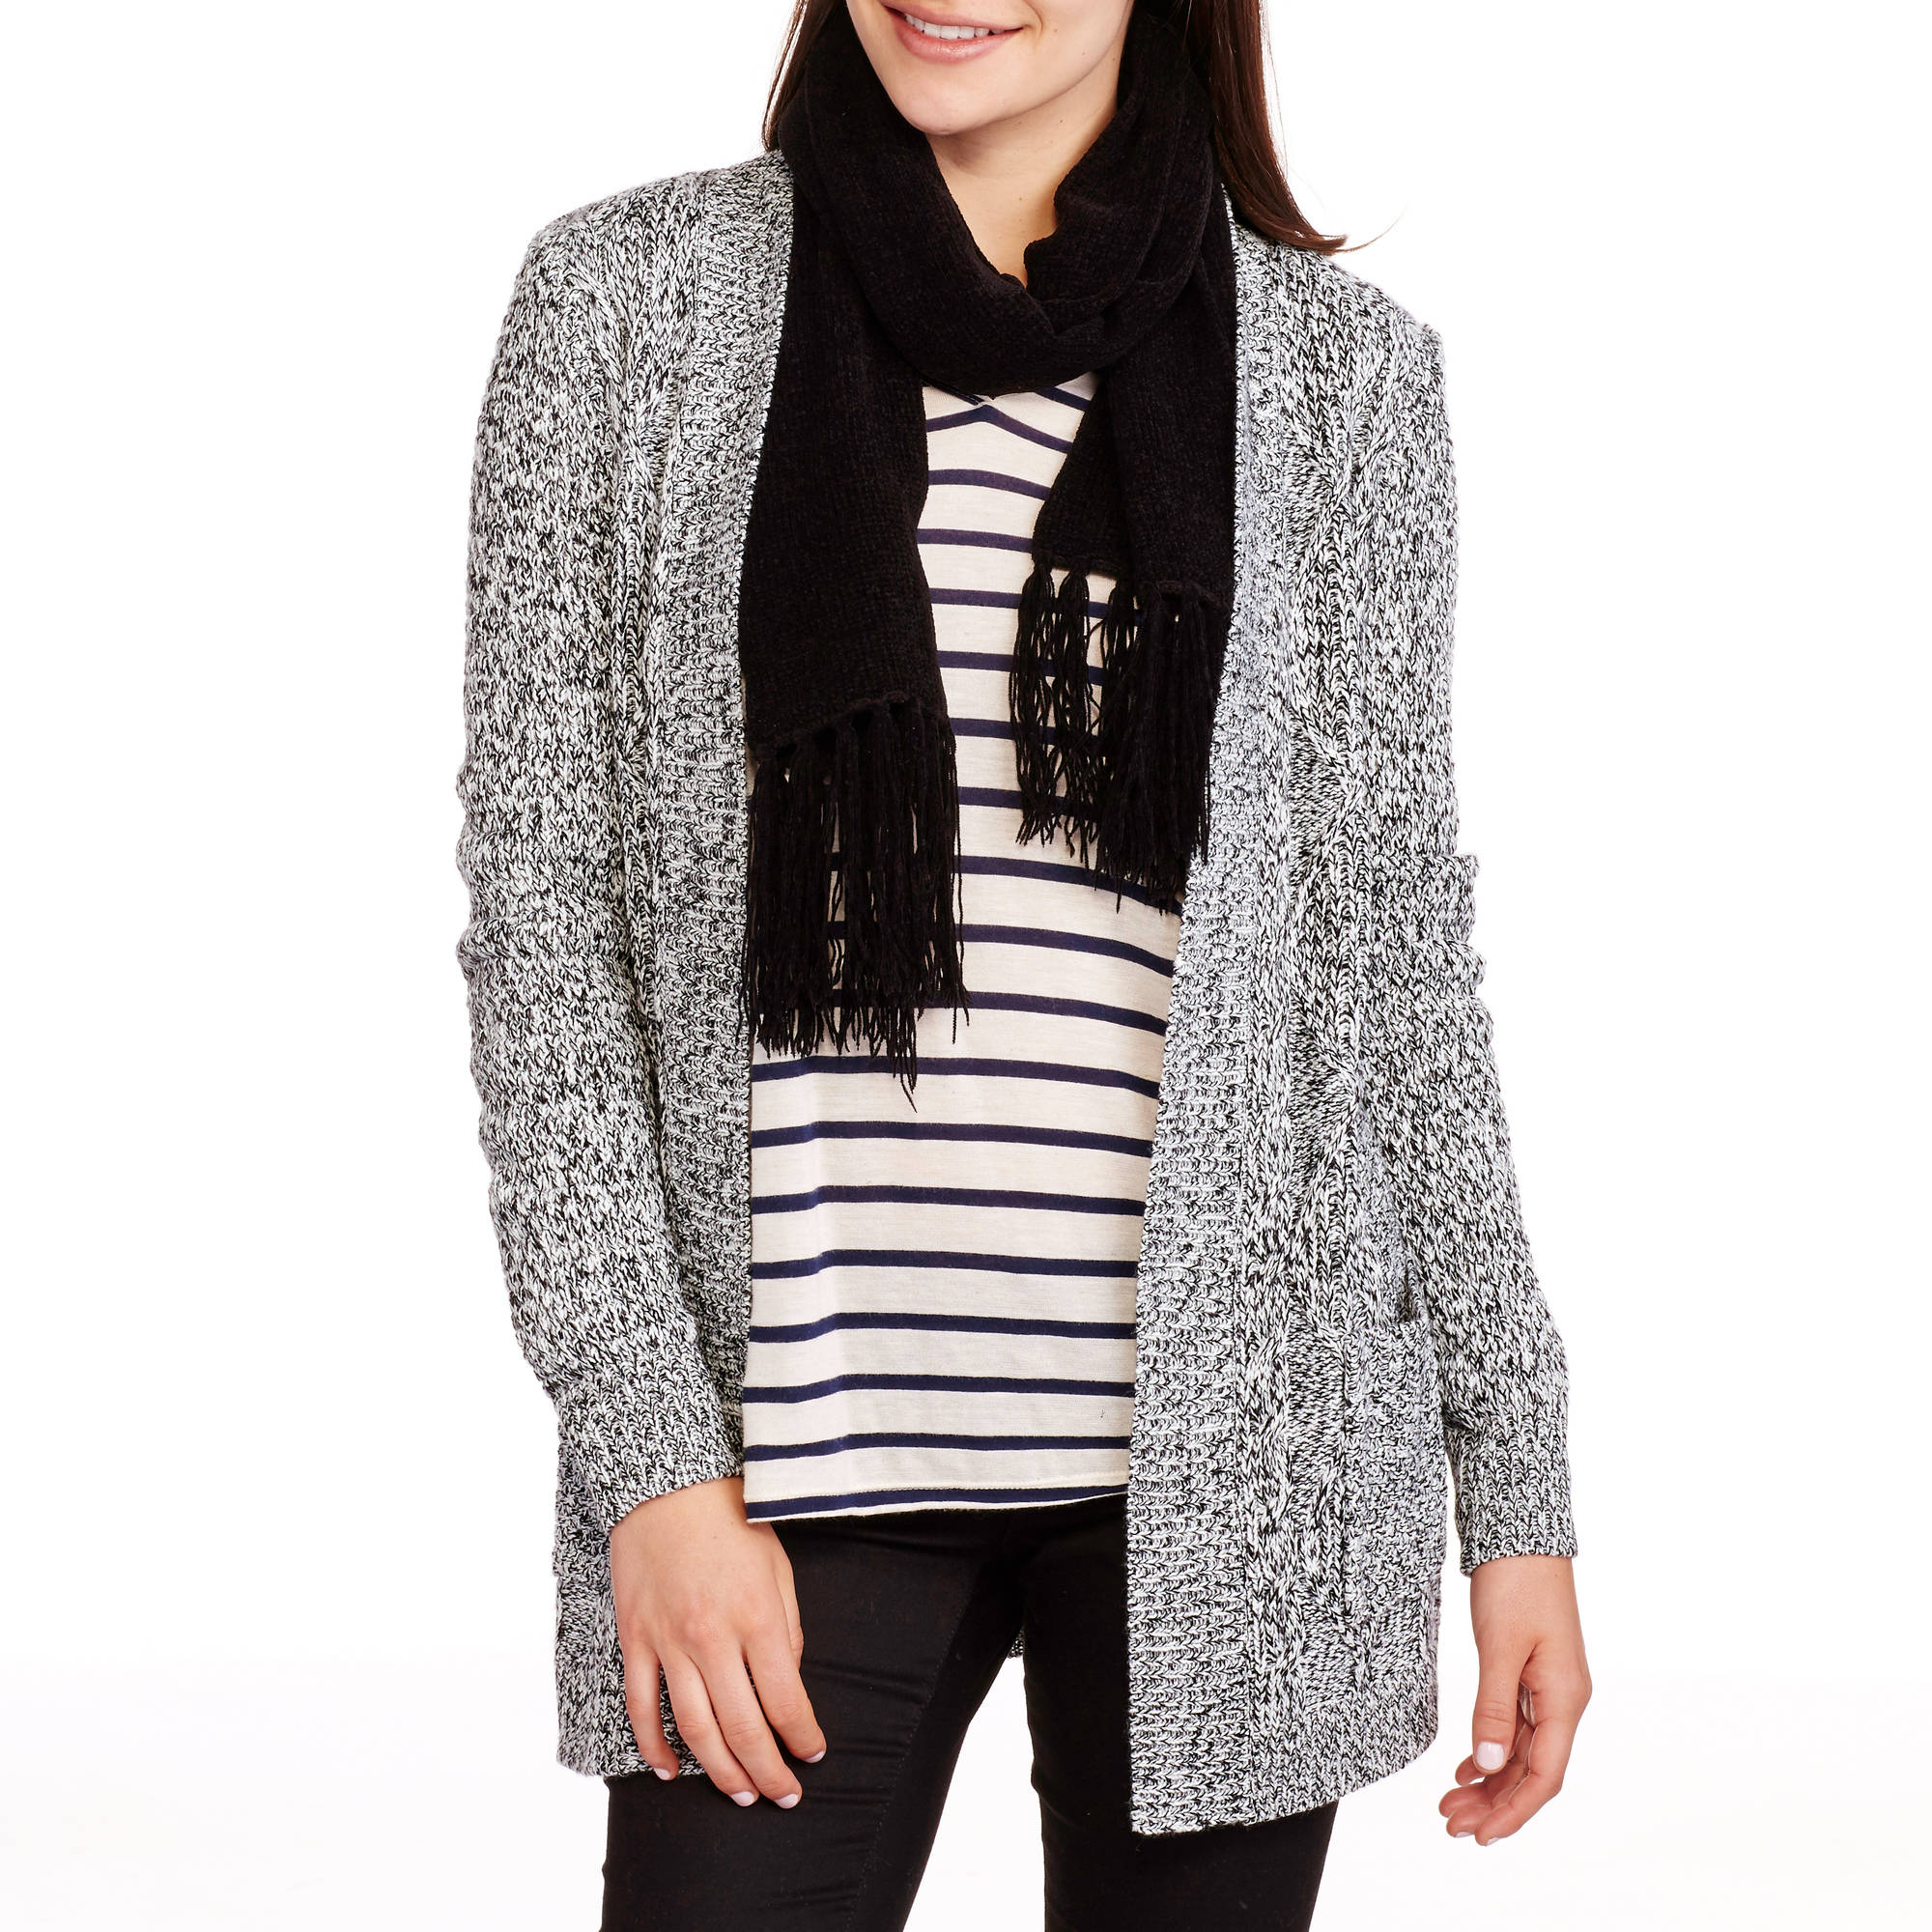 Faded Glory Women's 2 Pocket Cardigan Sweater